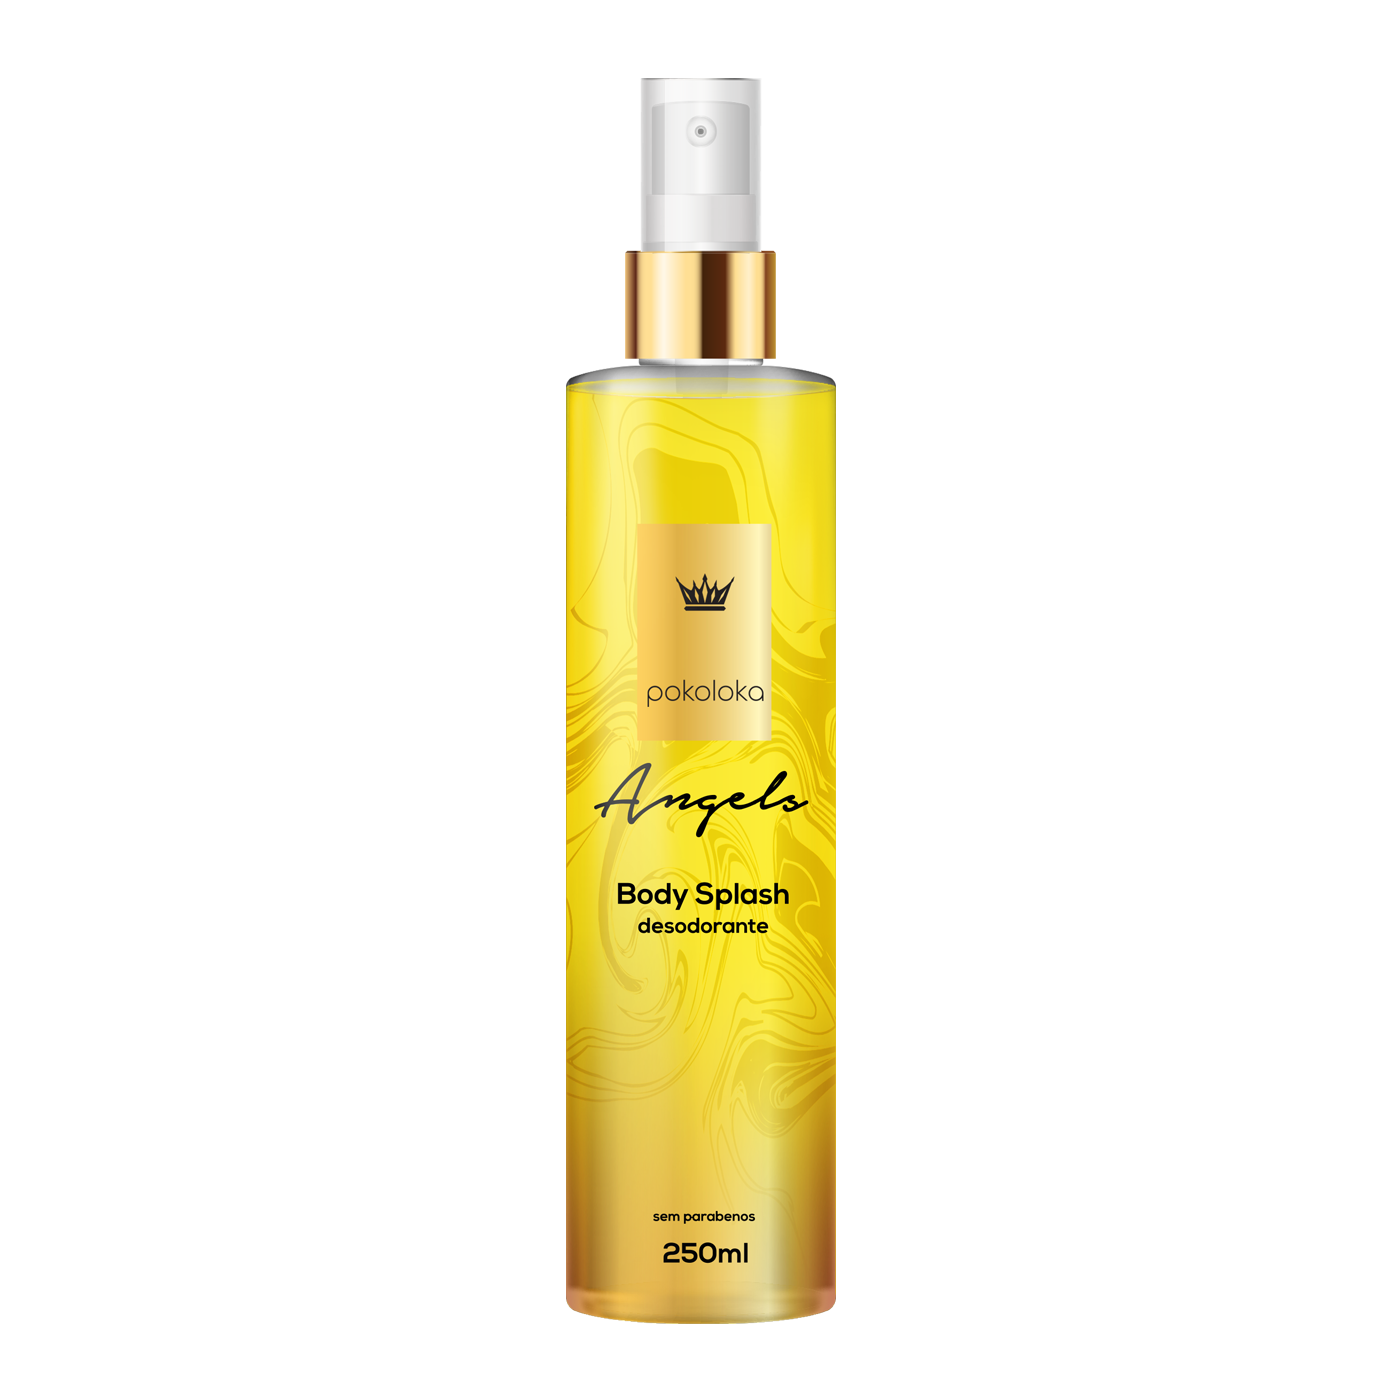 Body Splash Perfumado Angels  Pokaloka 250ml